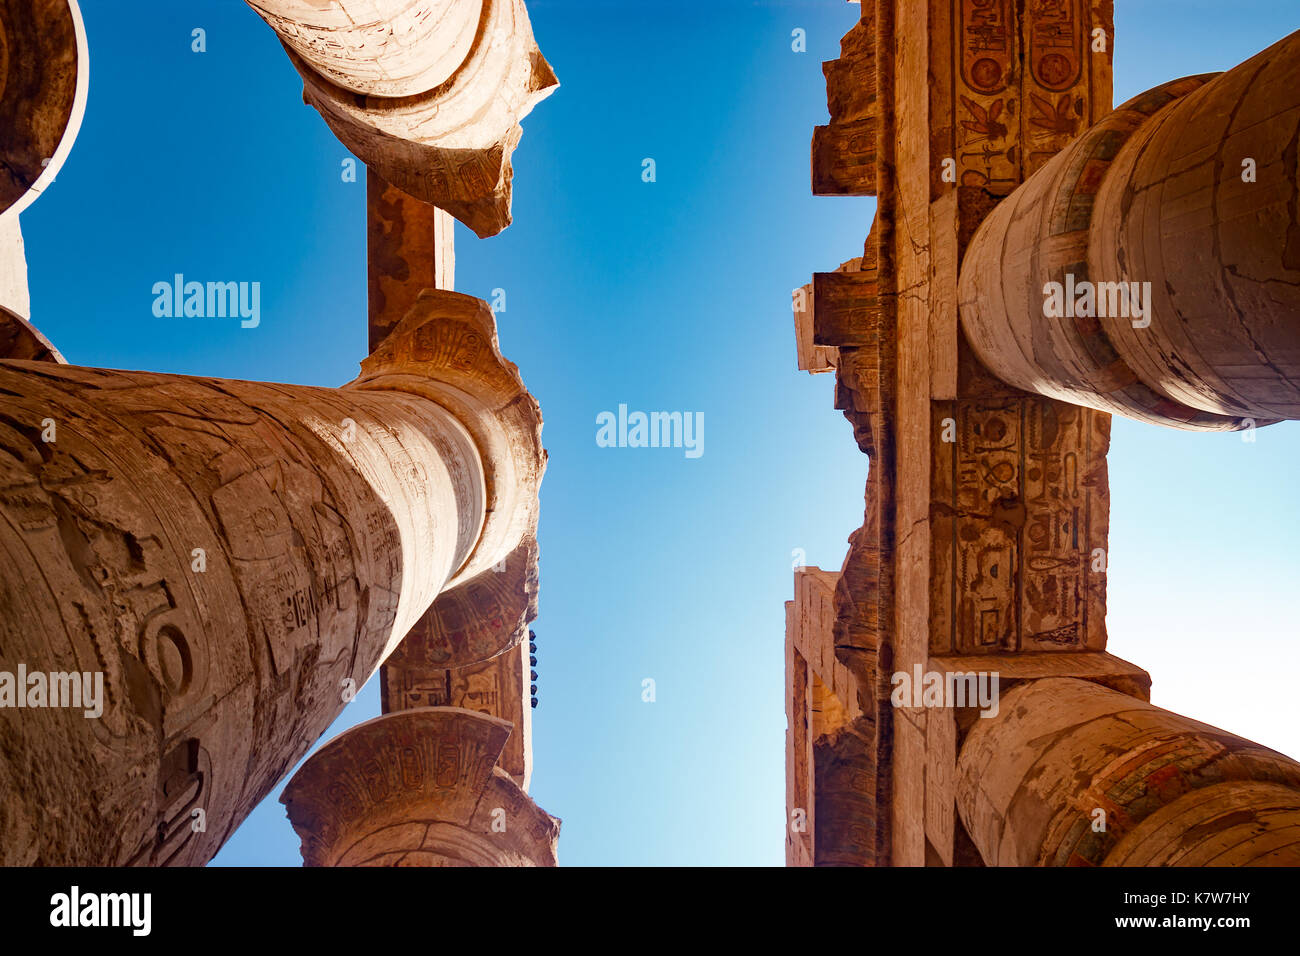 Egyptian hieroglyphic columns in Luxor, Egypt - Stock Image